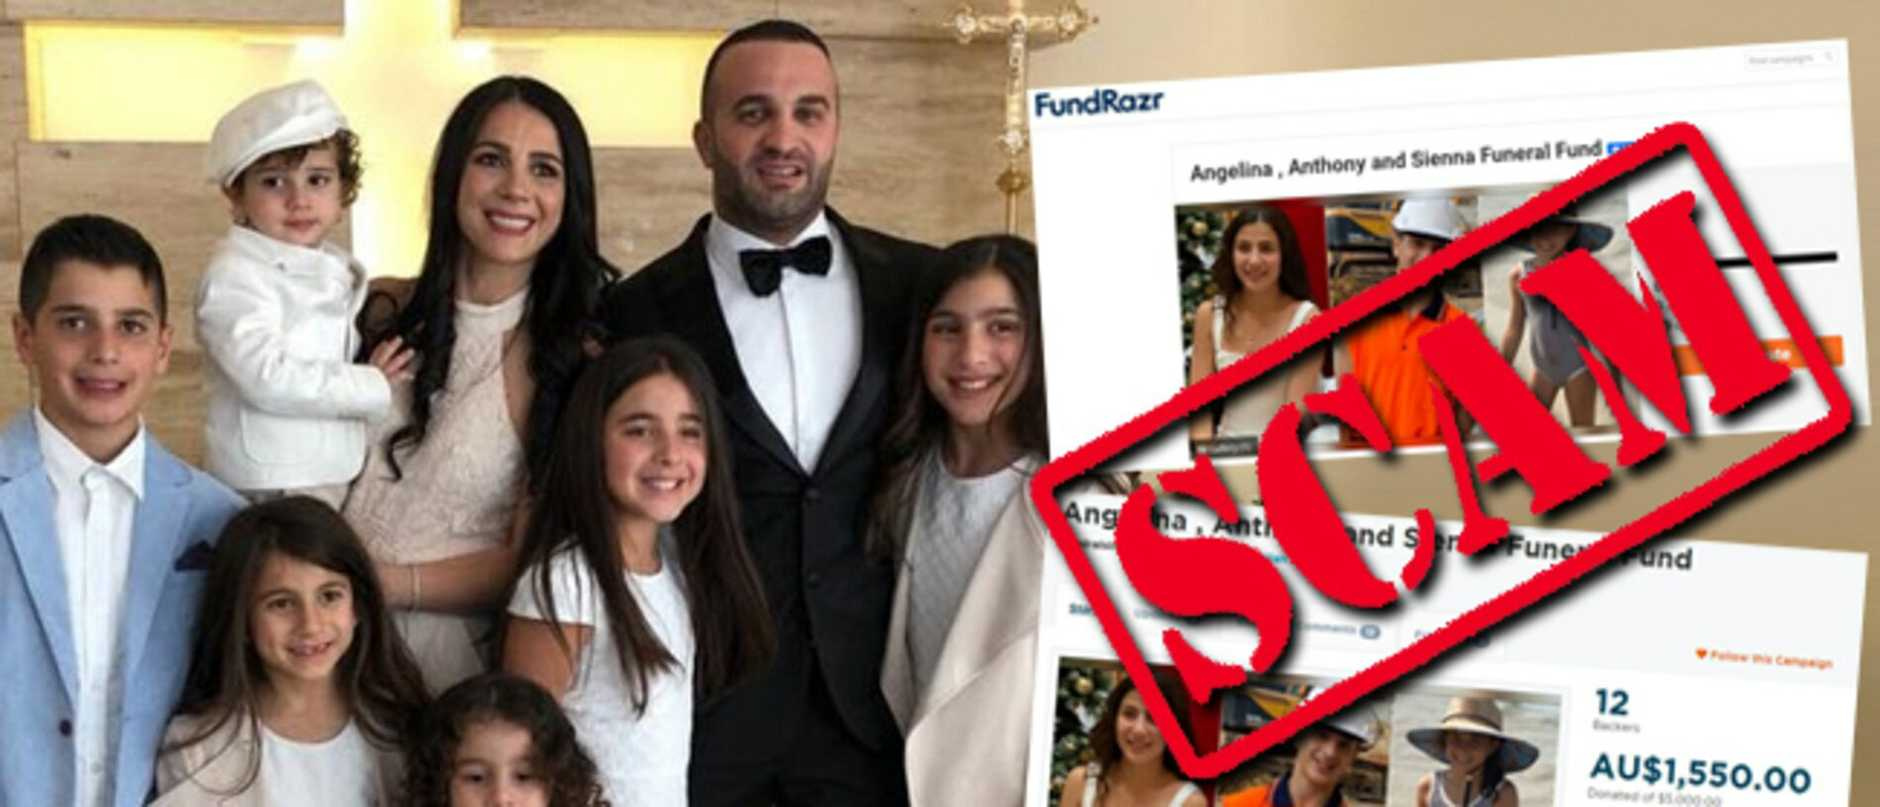 Two families still reeling from the deaths of four children in a car crash are now having to deal with heartless scammers trying to profit from the tragedy.